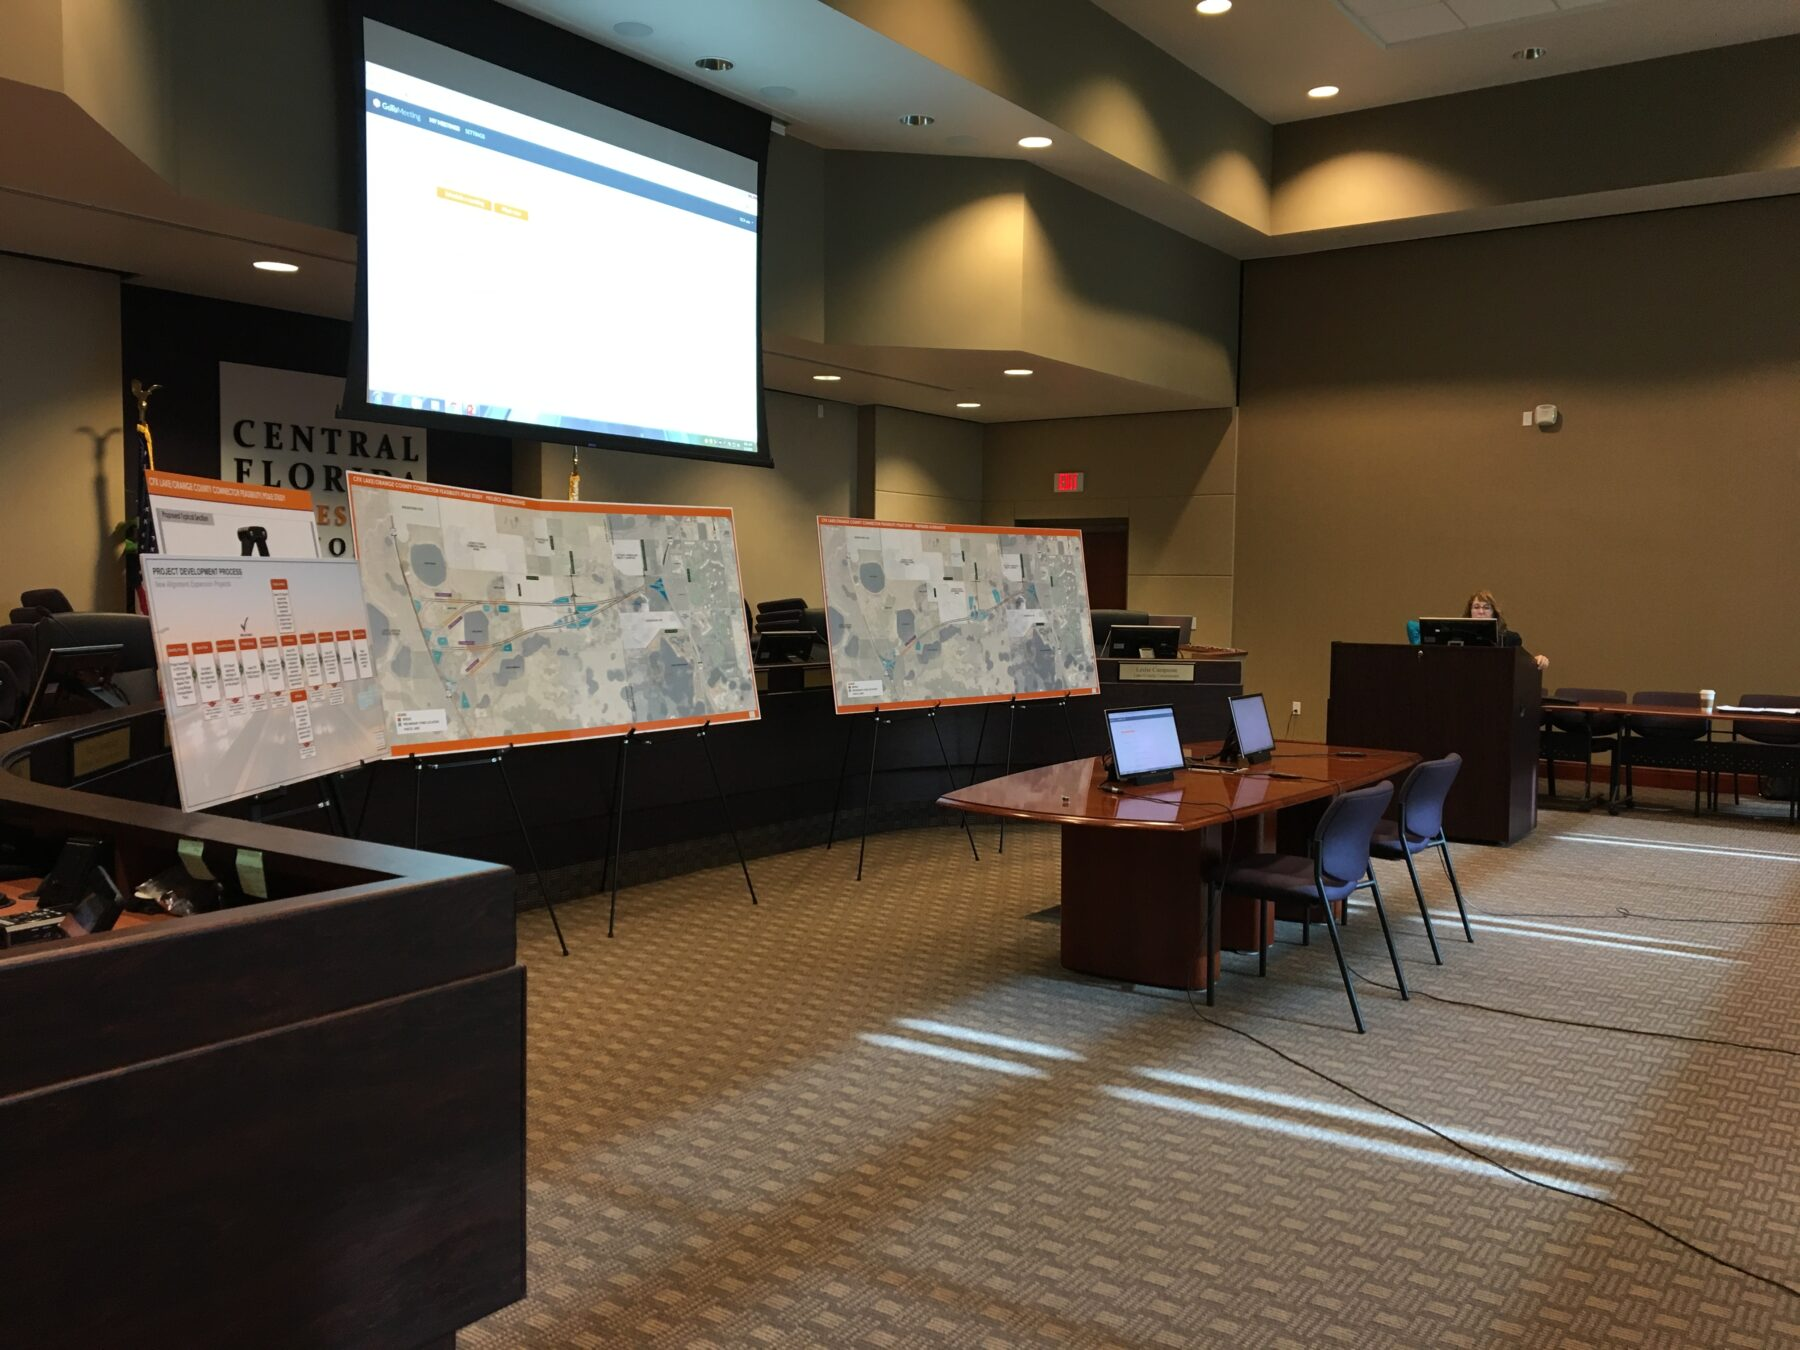 May 2, 2019 EAG meeting for the CFX Lake/Orange County Connector Feasibility/PD&E Study